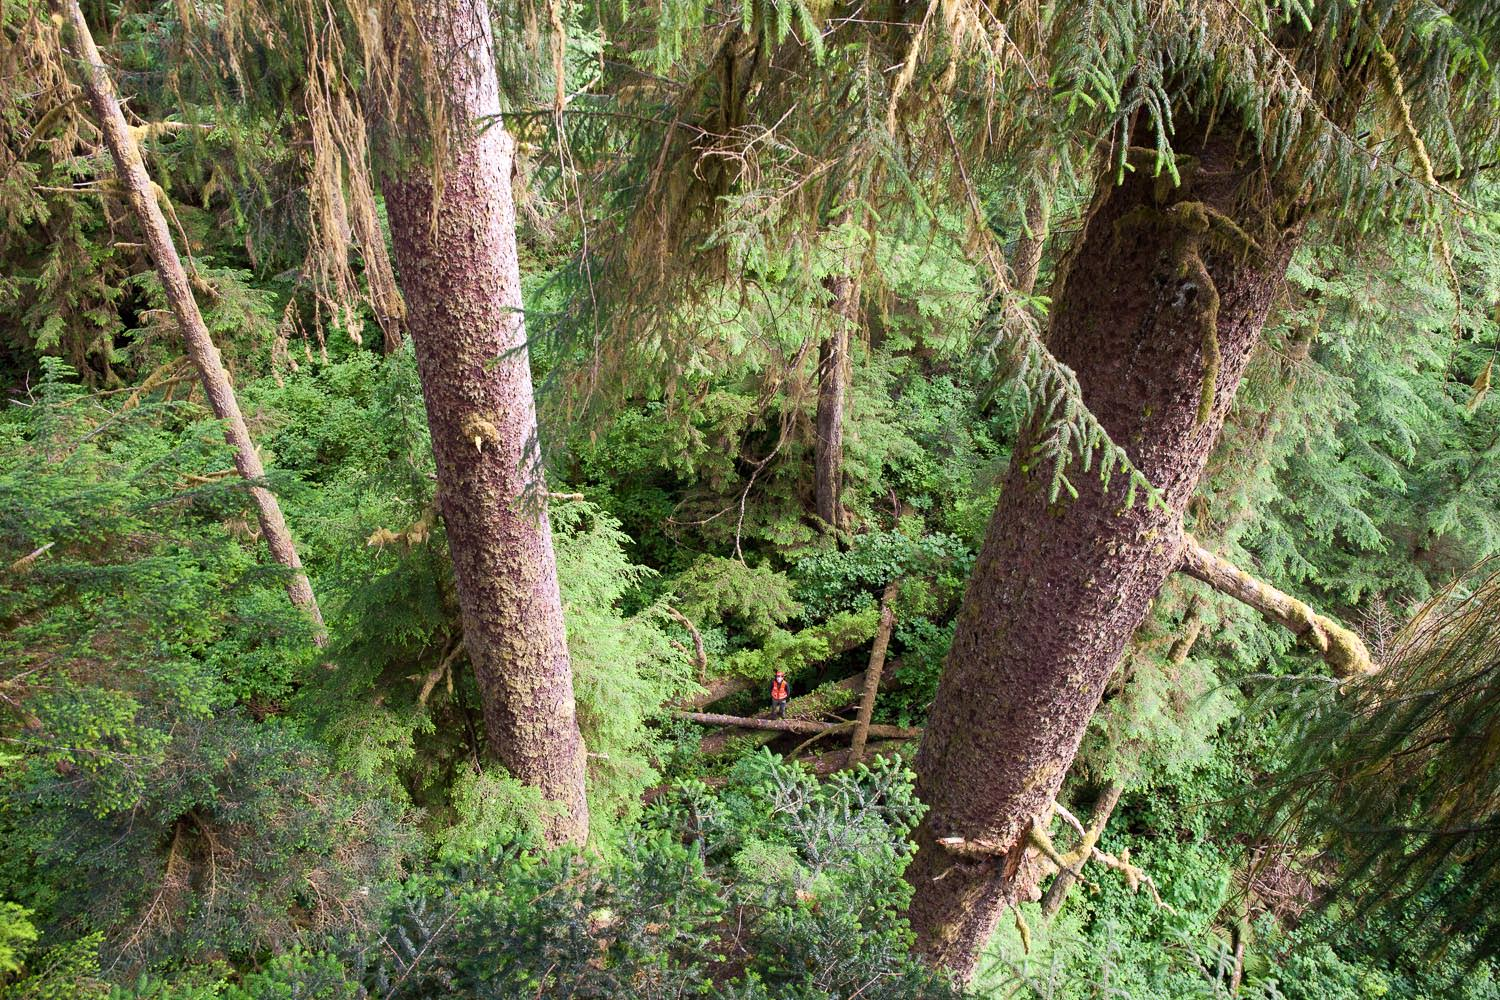 carmanah-valley-sitka-spruce-tree-climb.jpg